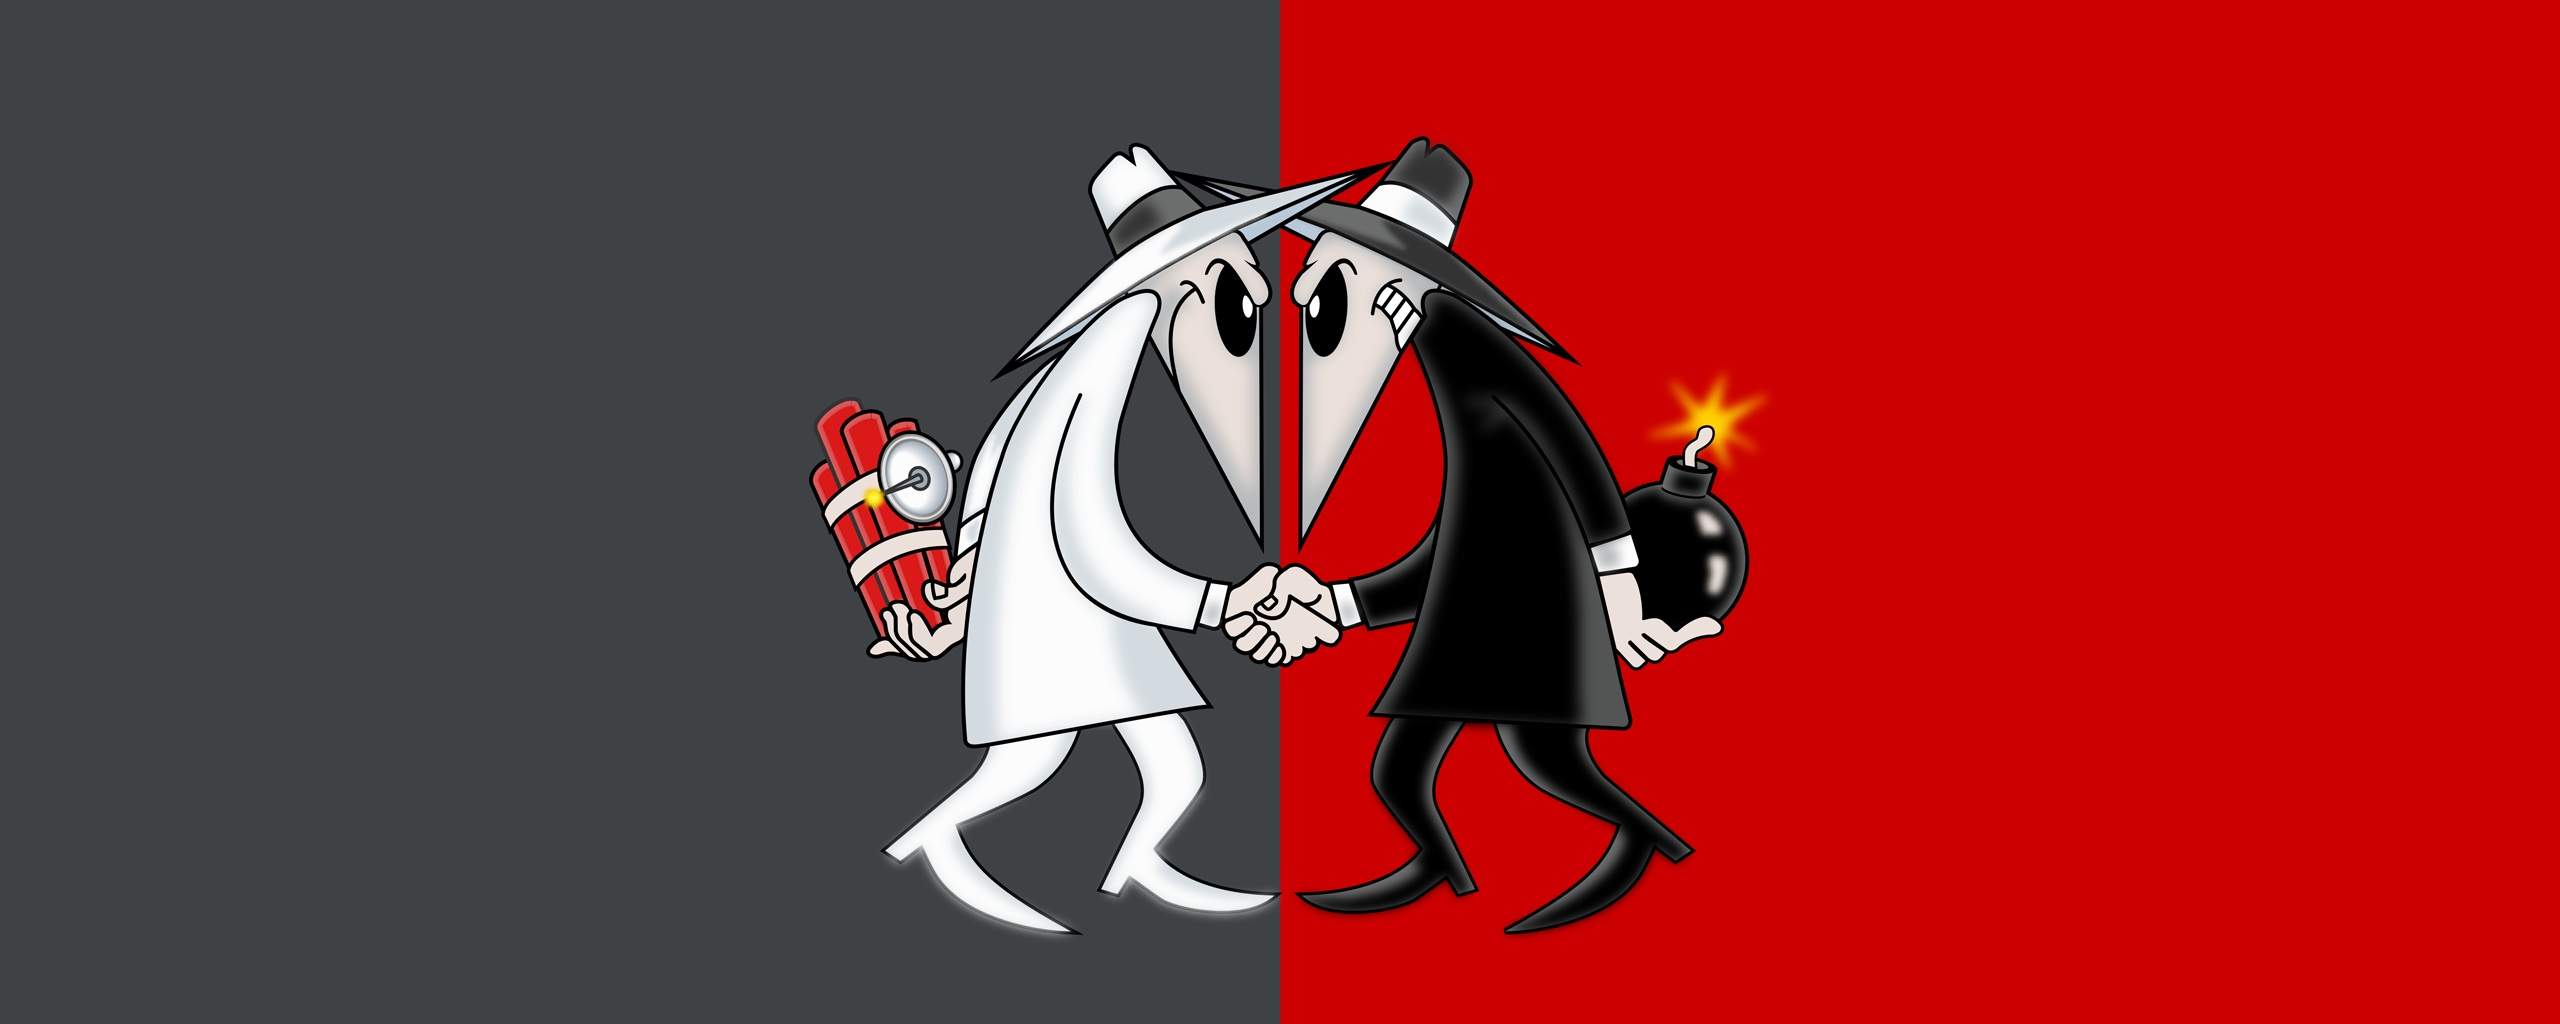 spy_vs_spy_wallpaper_2560x1024_by_zarious